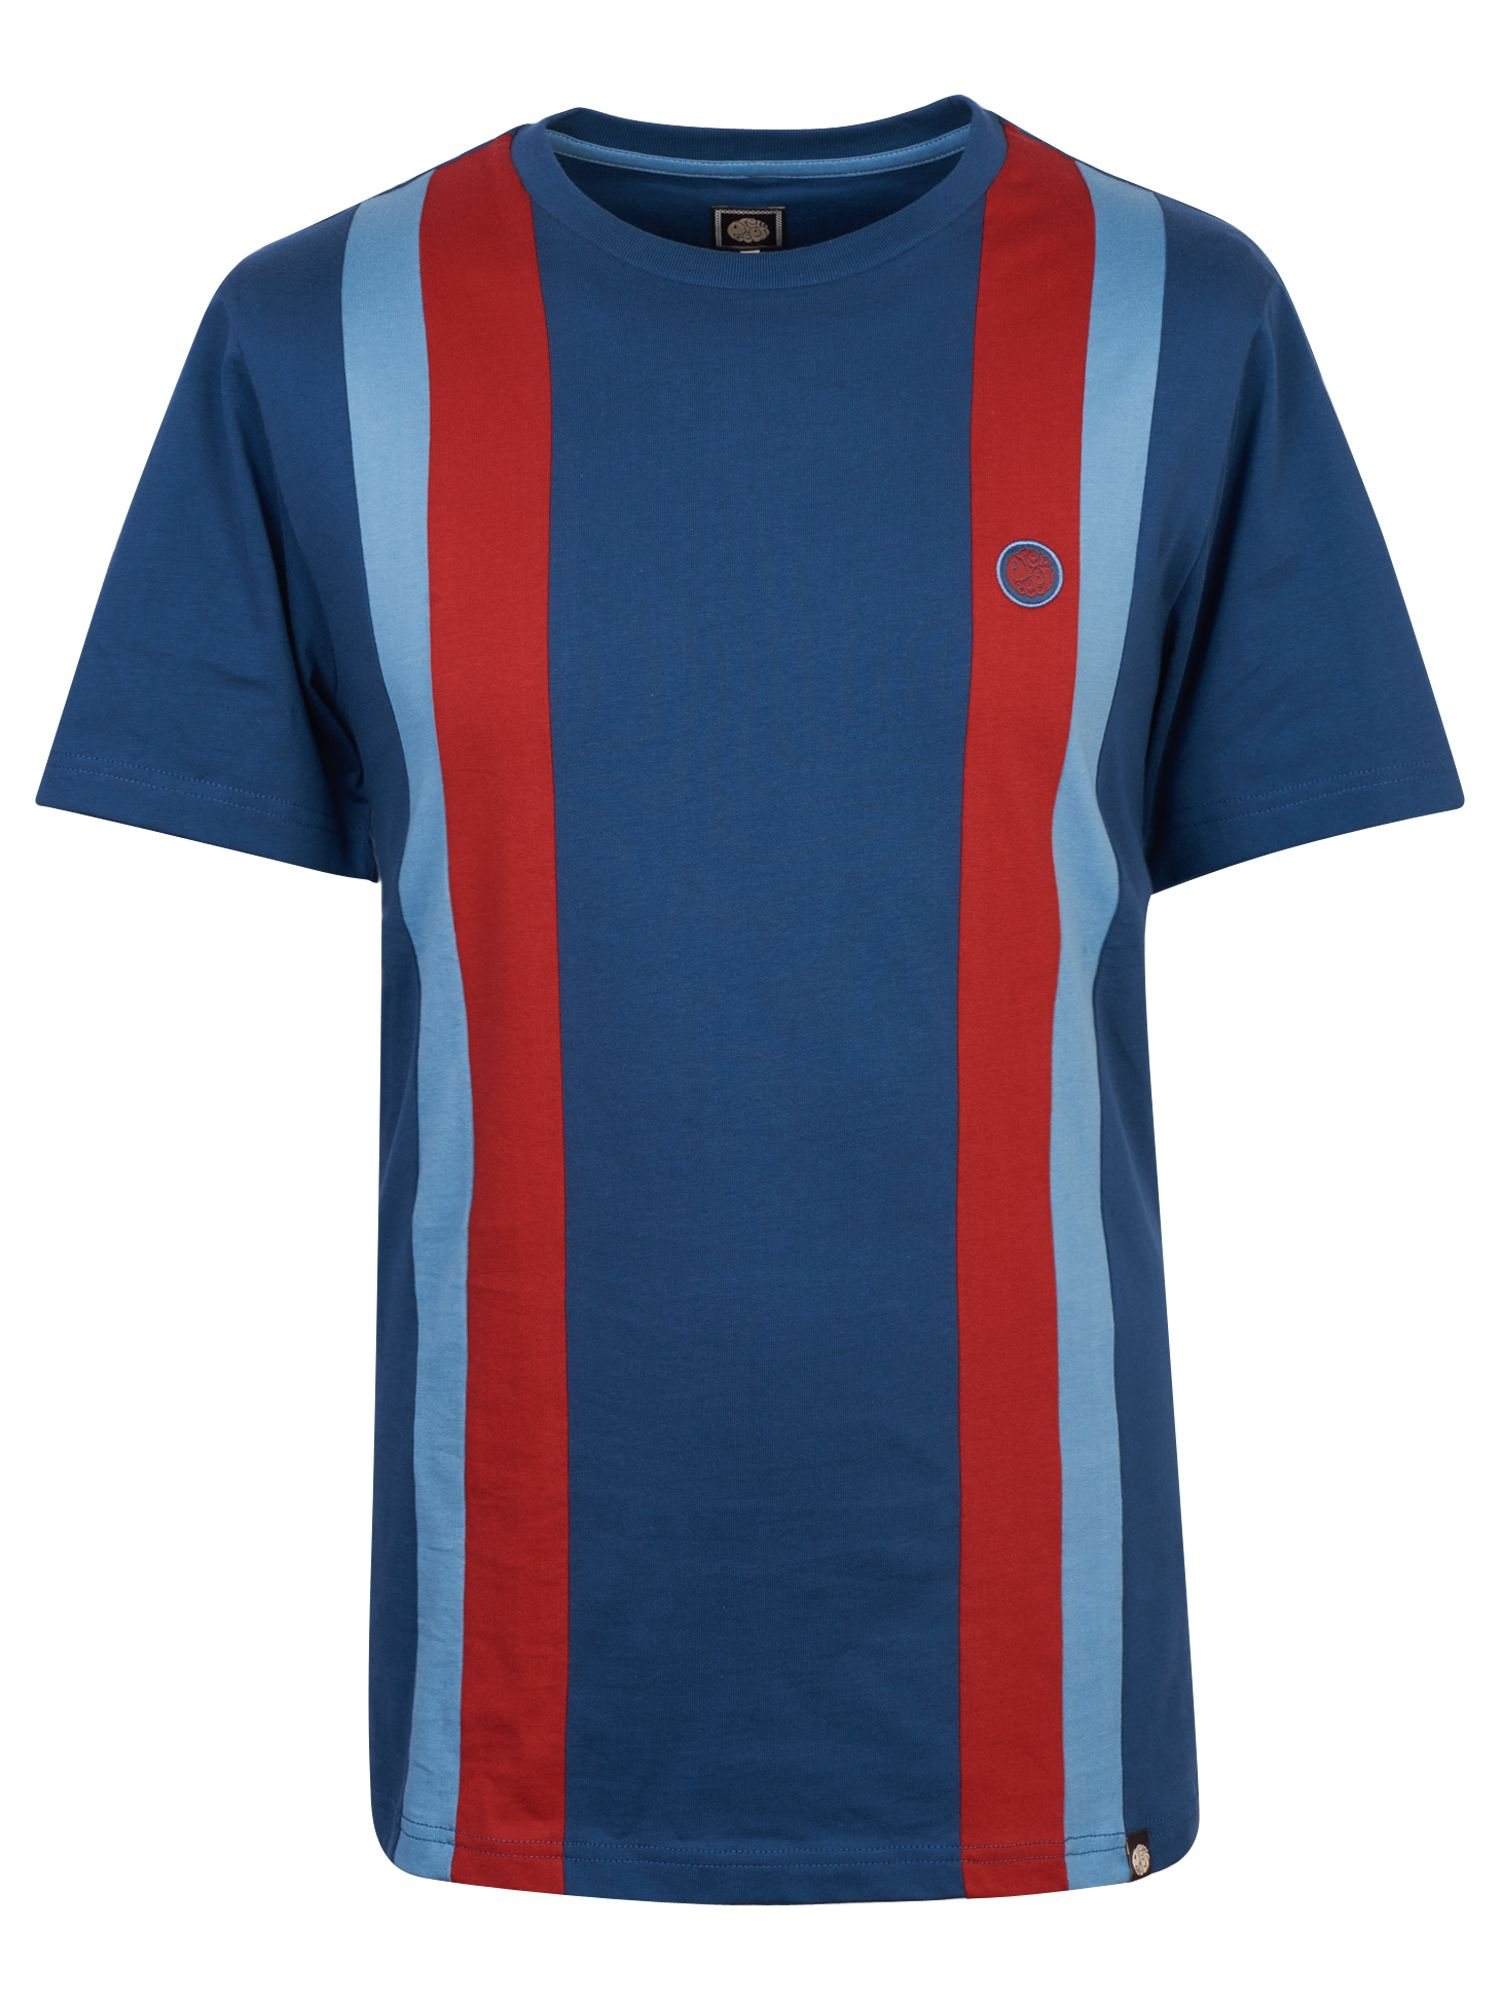 Men's Pretty Green Striped T-Shirt, Dark Blue